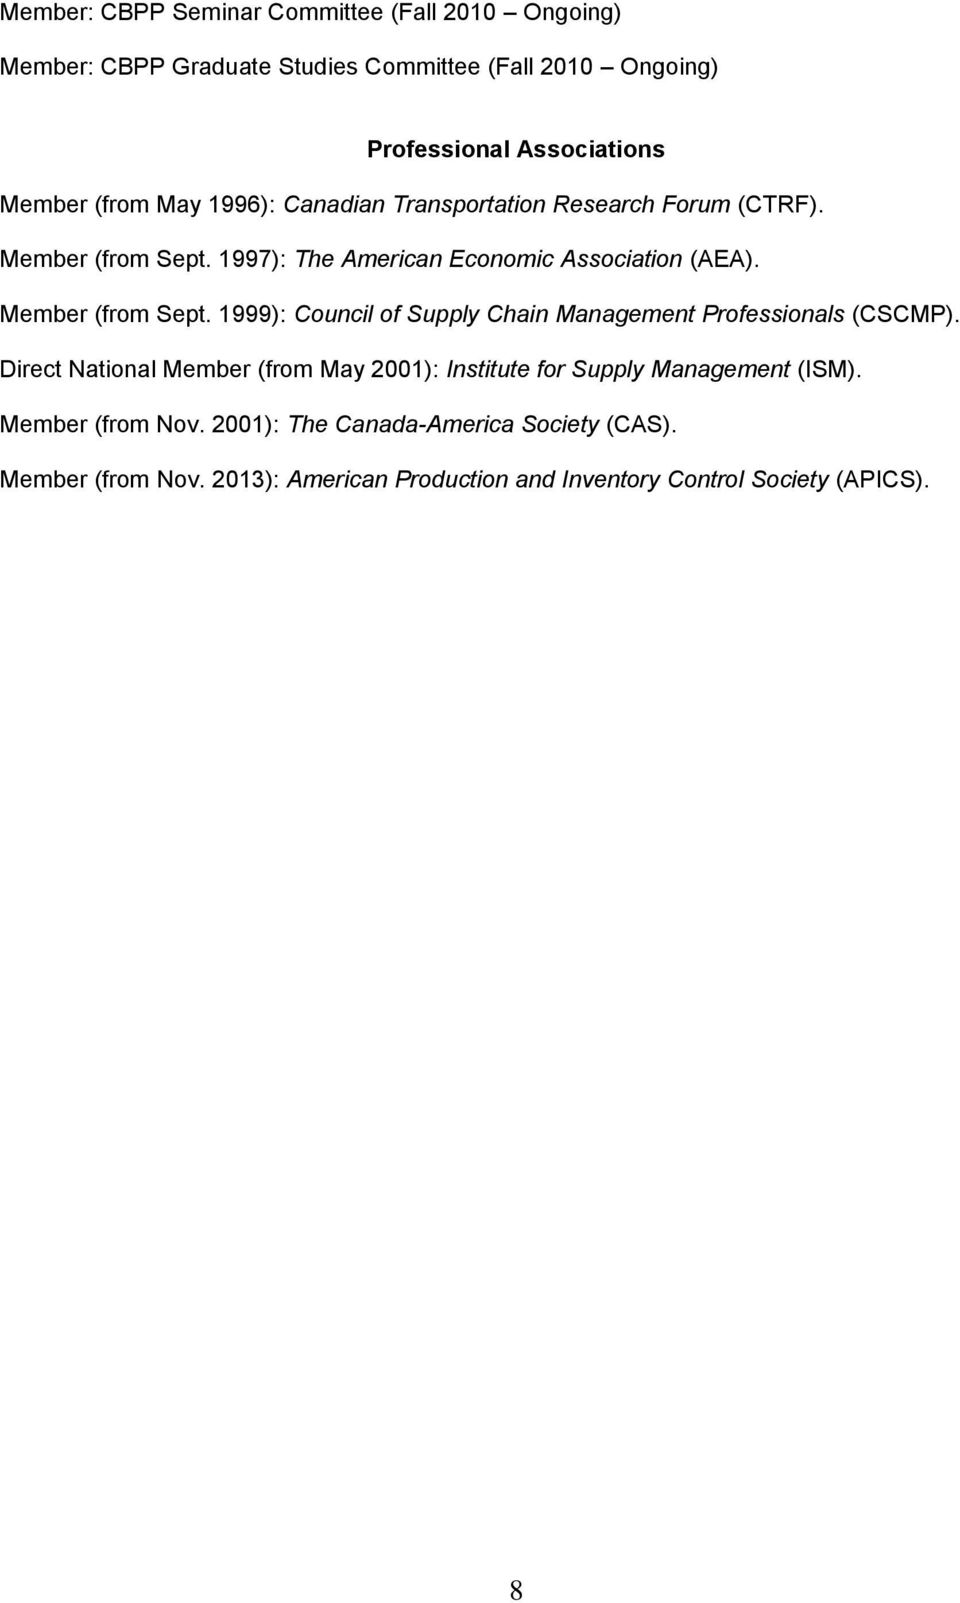 Member (from Sept. 1999): Council of Supply Chain Management Professionals (CSCMP).